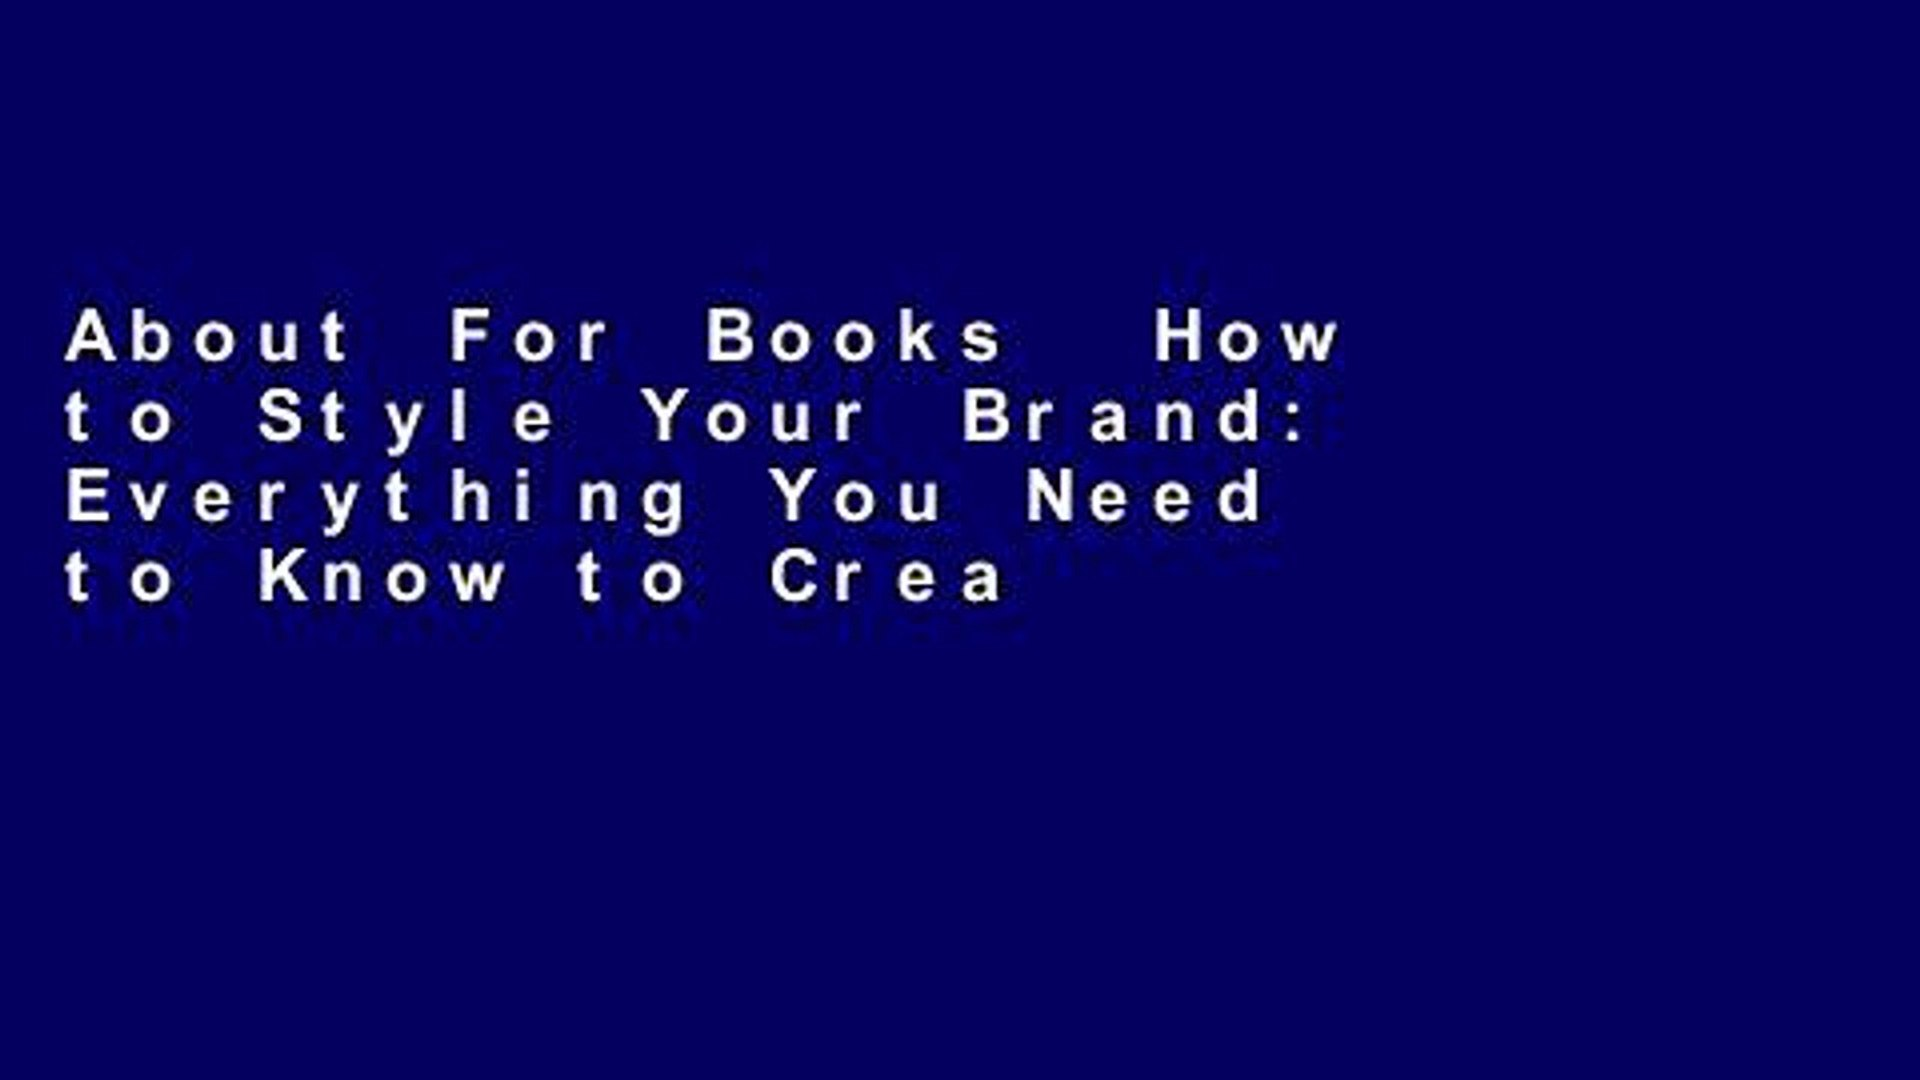 About For Books  How to Style Your Brand: Everything You Need to Know to Create a Distinctive